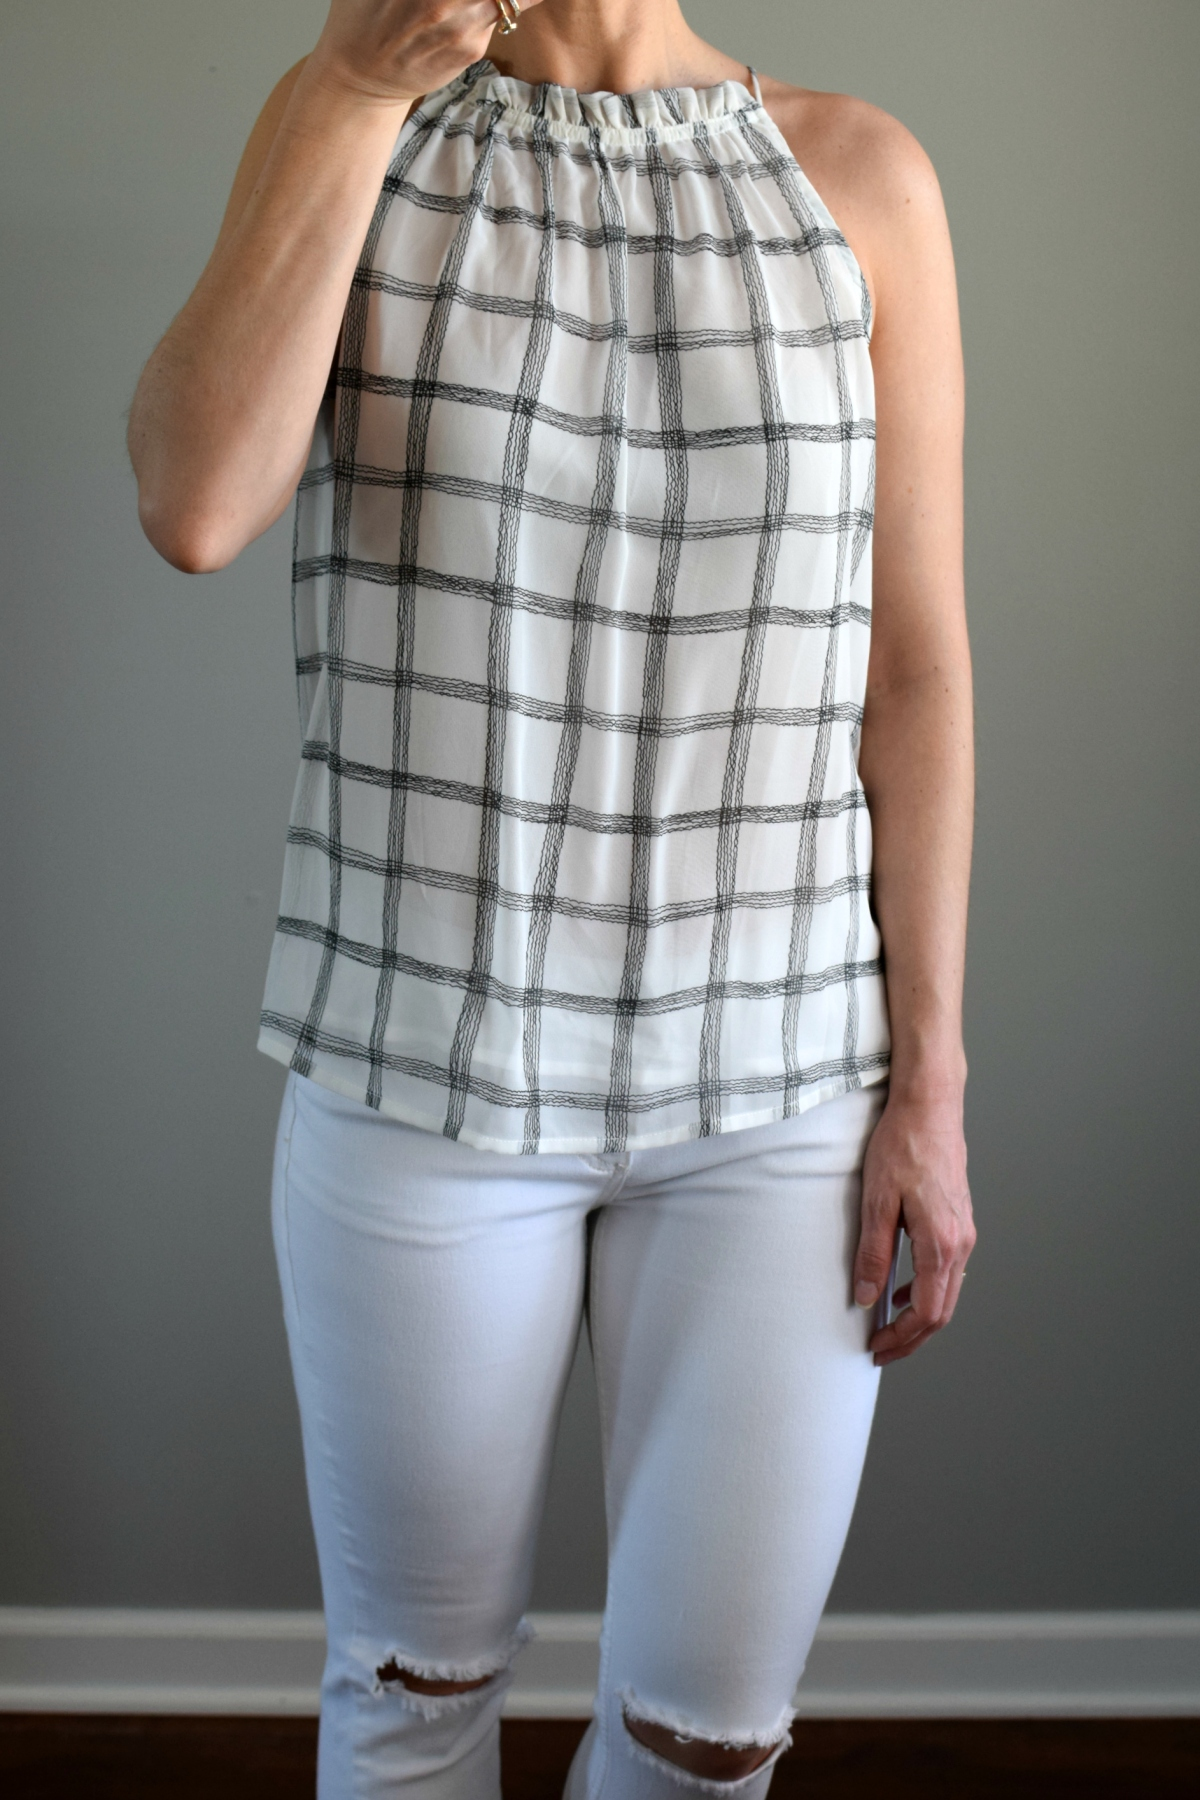 April 2017 Stitch Fix Review: Skies are Blue Maiya Halter Style Blouse |www.pearlsandsportsbras.com|